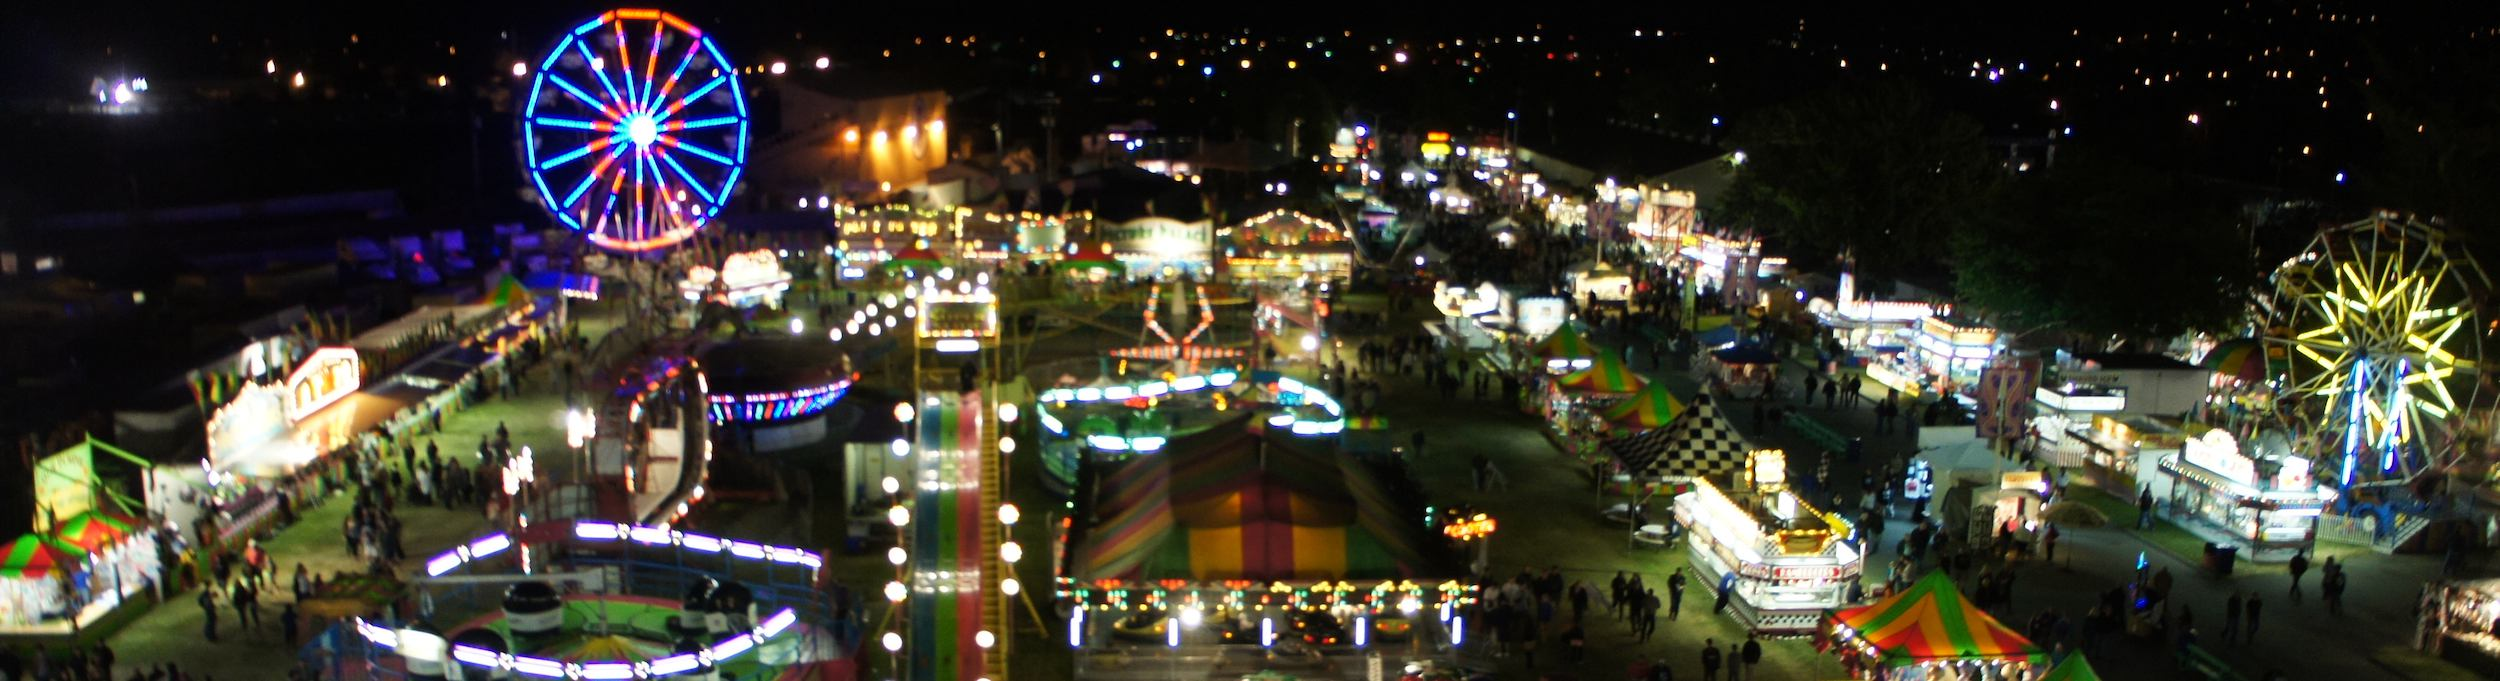 Home-Page-Carnival-Night-mm